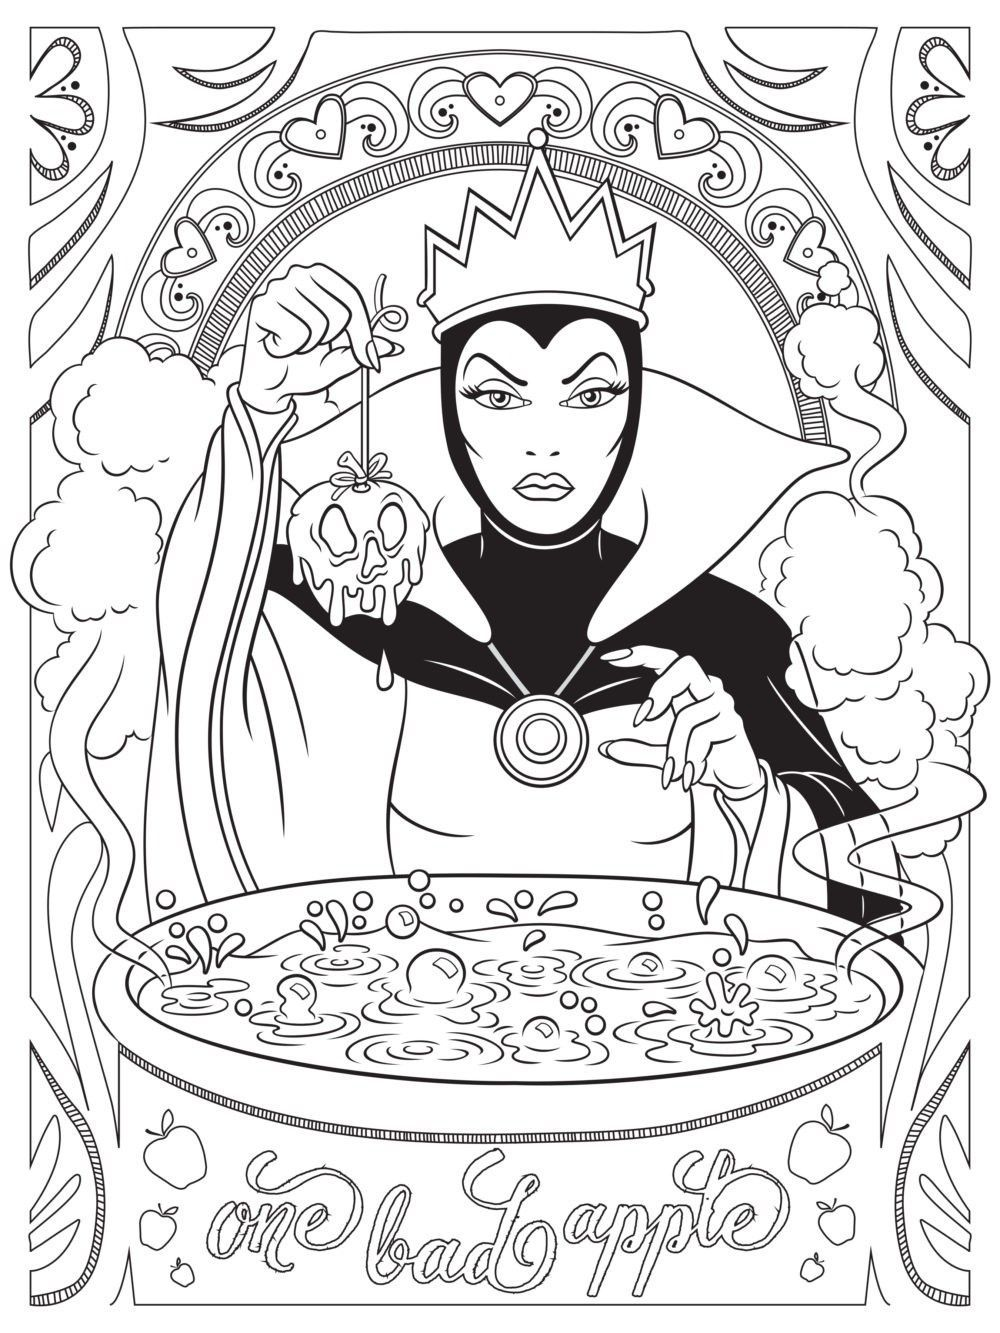 Evil Queen Coloring Pages 2019 Disney Coloring Pages Disegni Da Colorare Disegni Disegni Di Tumblr